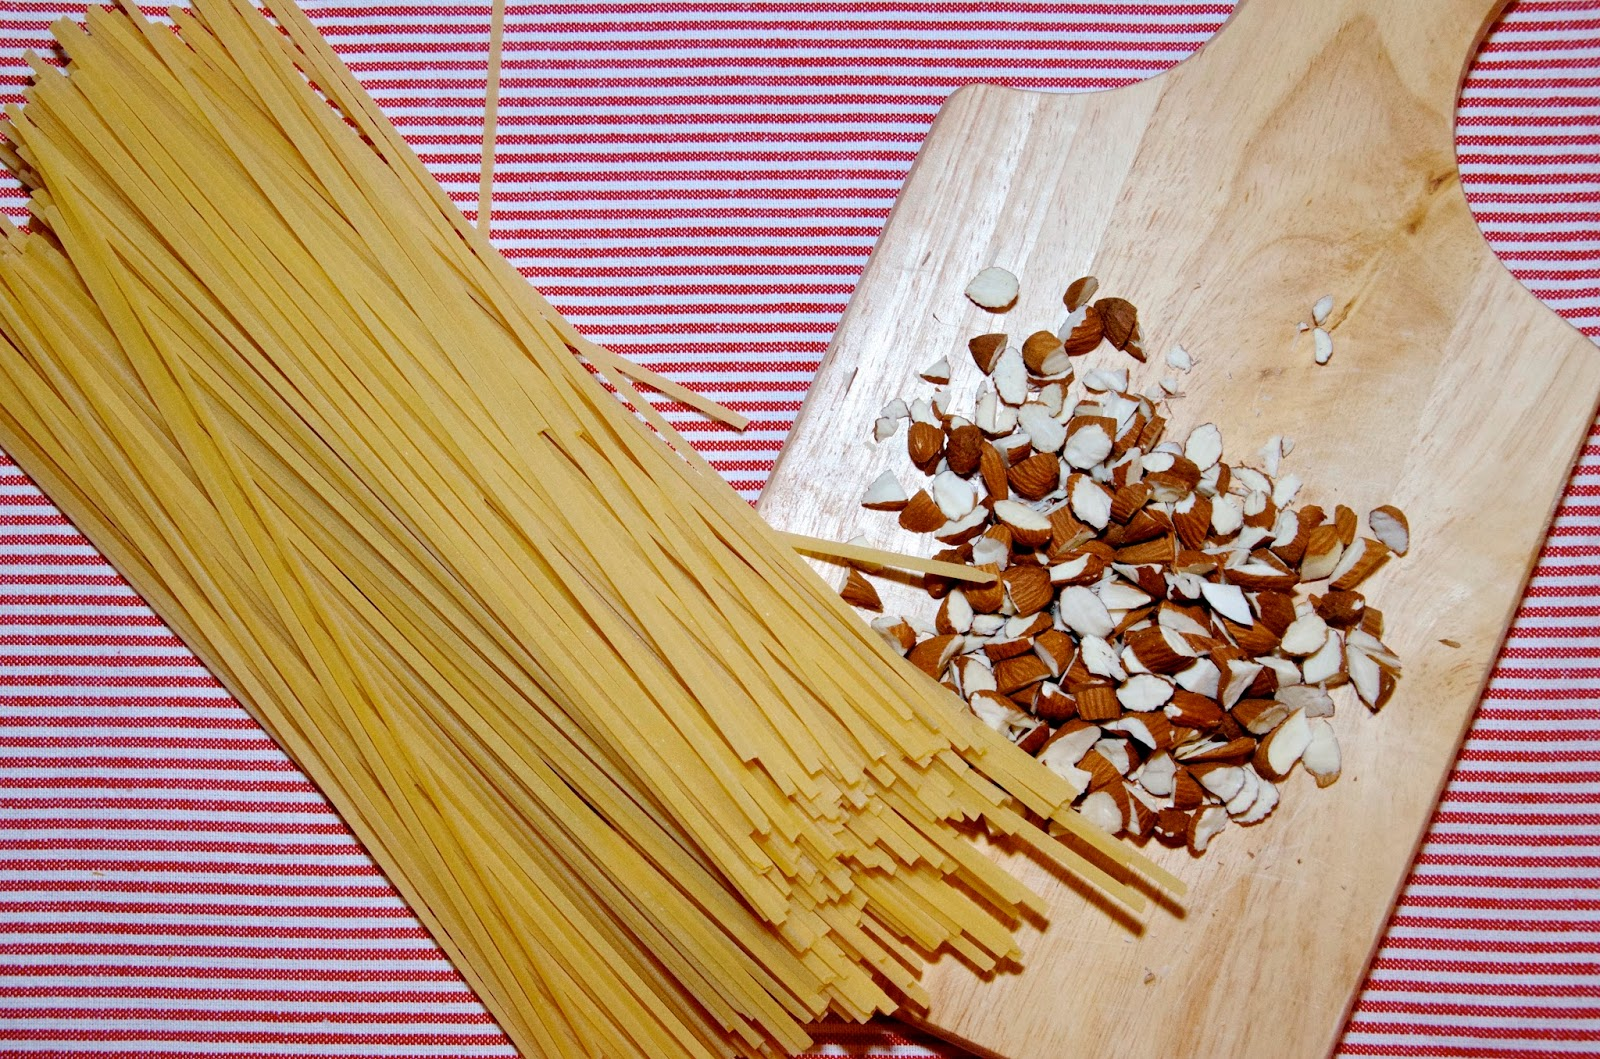 dried linguine and chopped almonds on a striped place mat with a chopping board